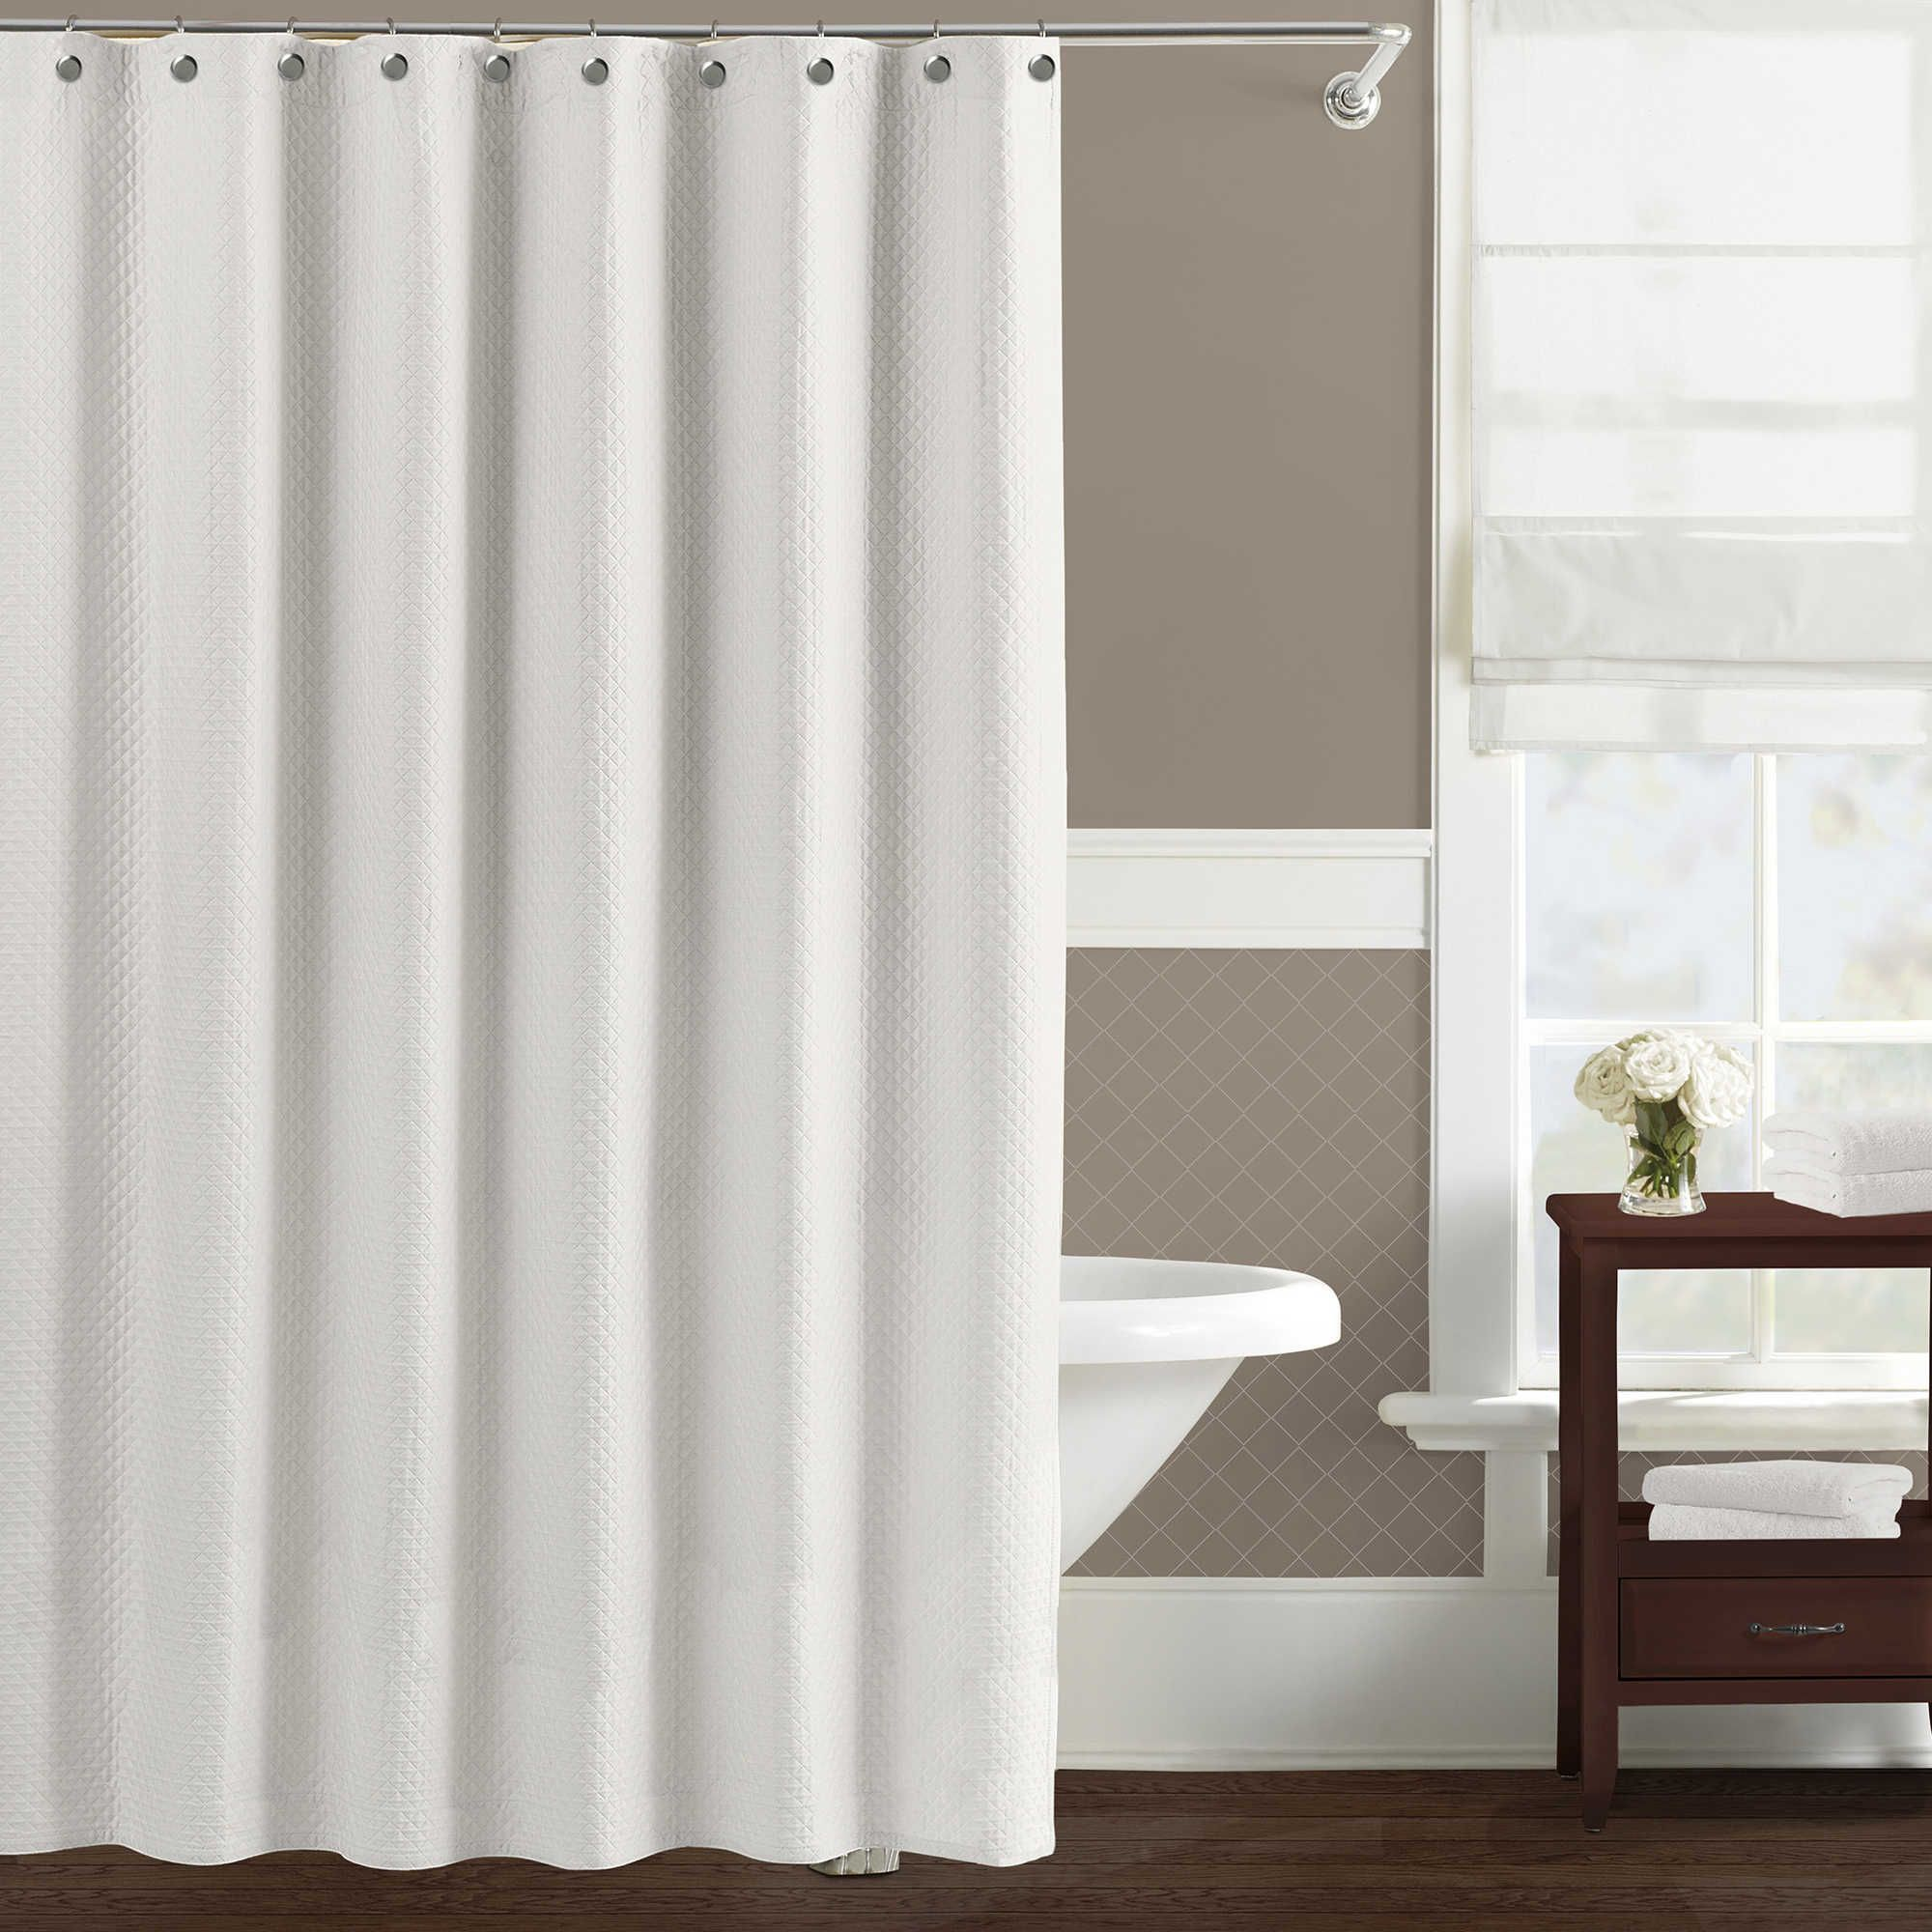 Lamont HomeTM Diamond Matelasse 72 Inch X 96 Extra Long Shower Curtain